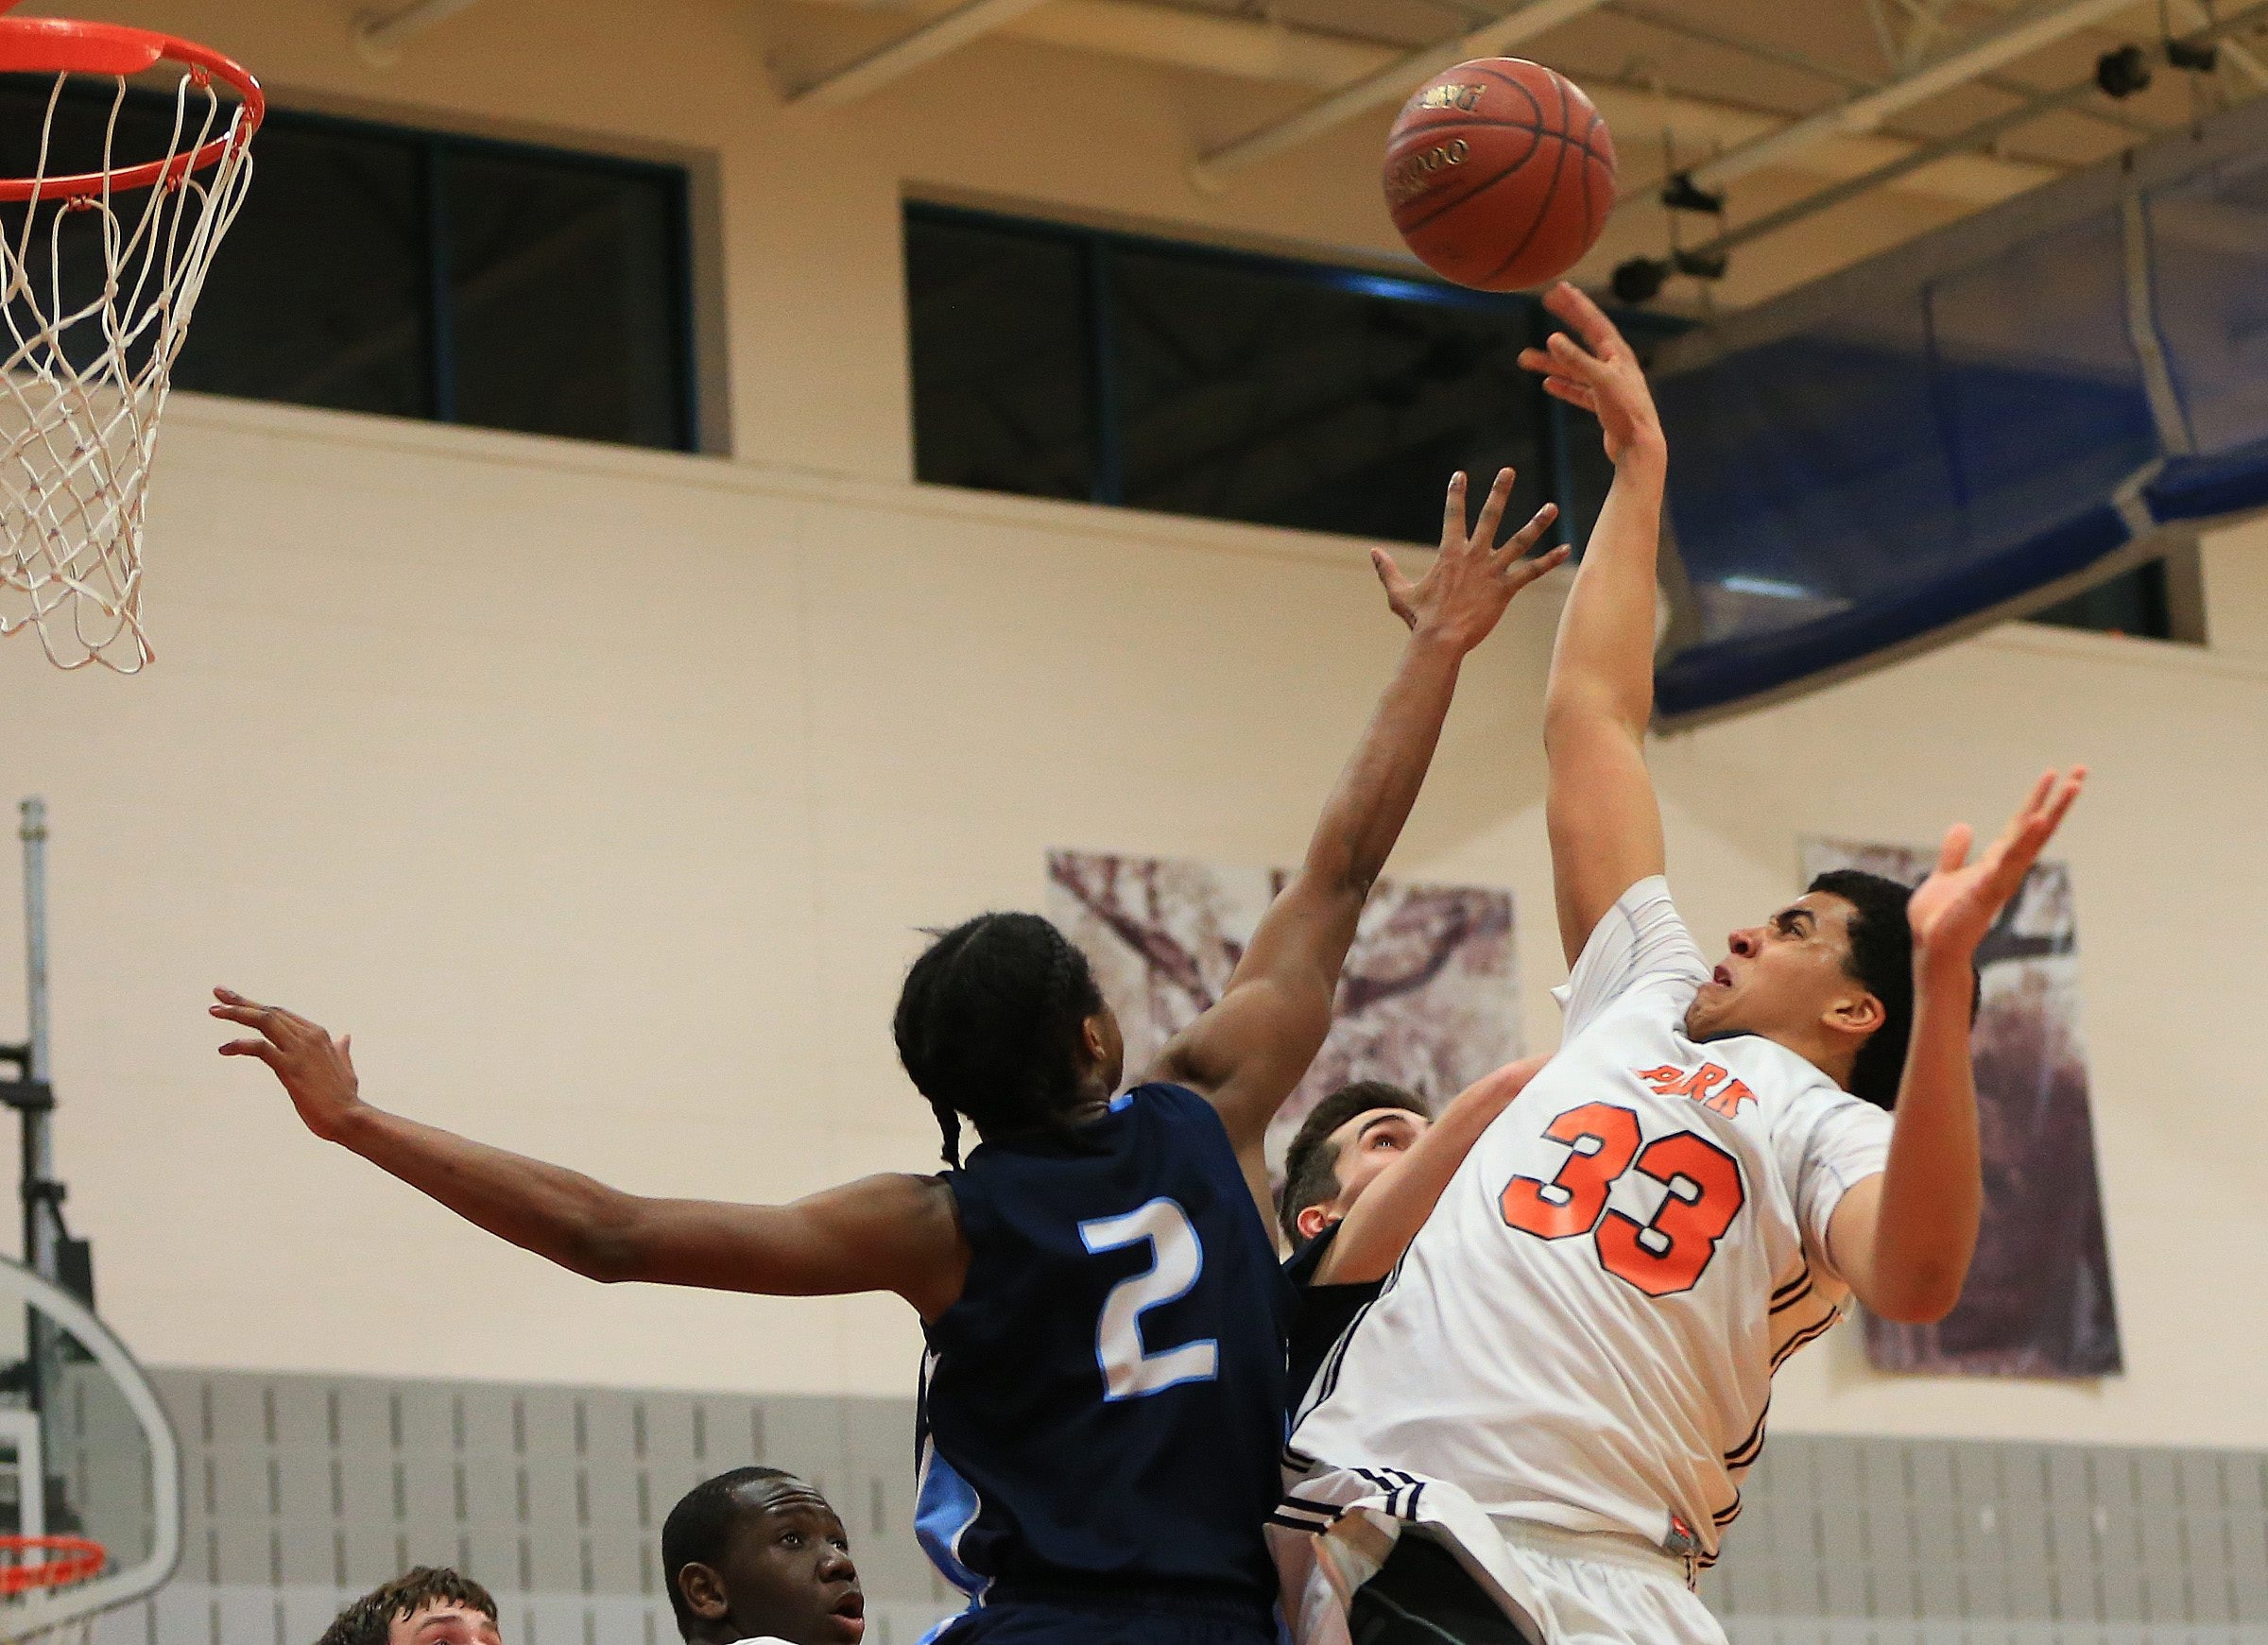 Park player Jordan Nwora (33) shoots over Cameron Dunning (2) from St. Mary's during second half action at the Park School  on Friday, Jan. 23, 2015.(Harry Scull Jr./Buffalo News)